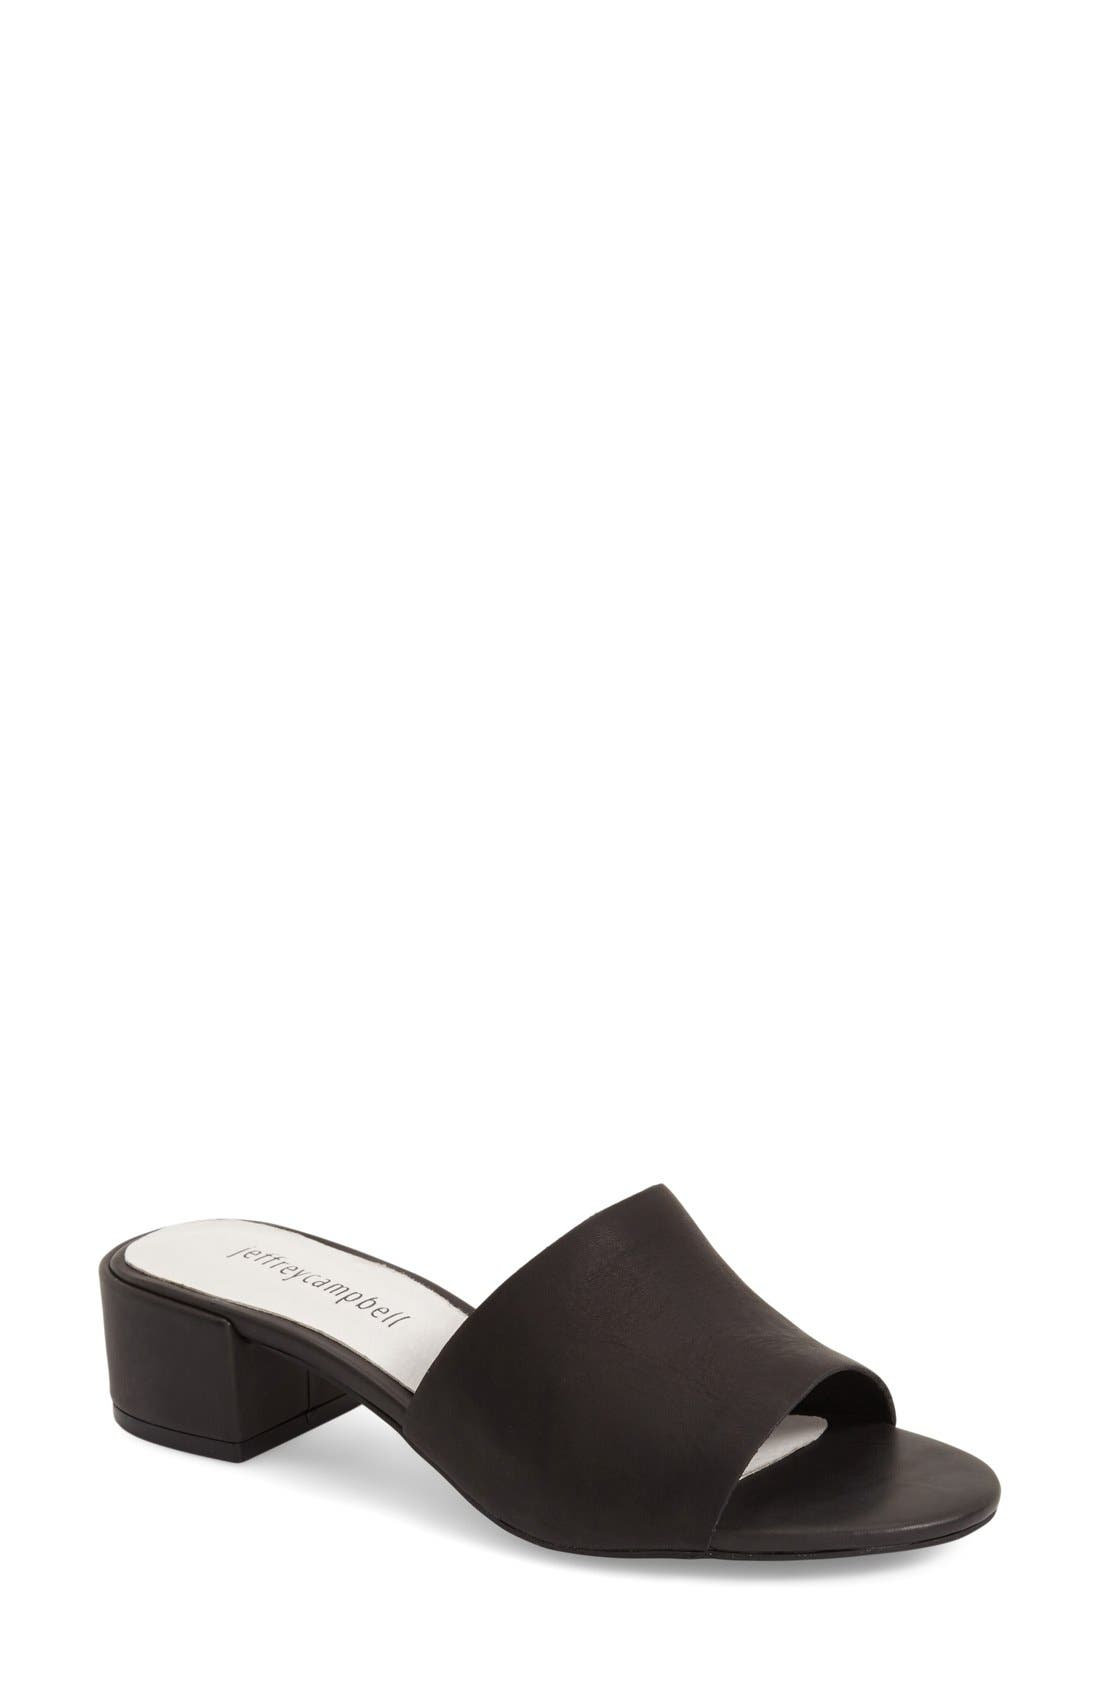 'Beaton' Slide Sandal,                         Main,                         color,